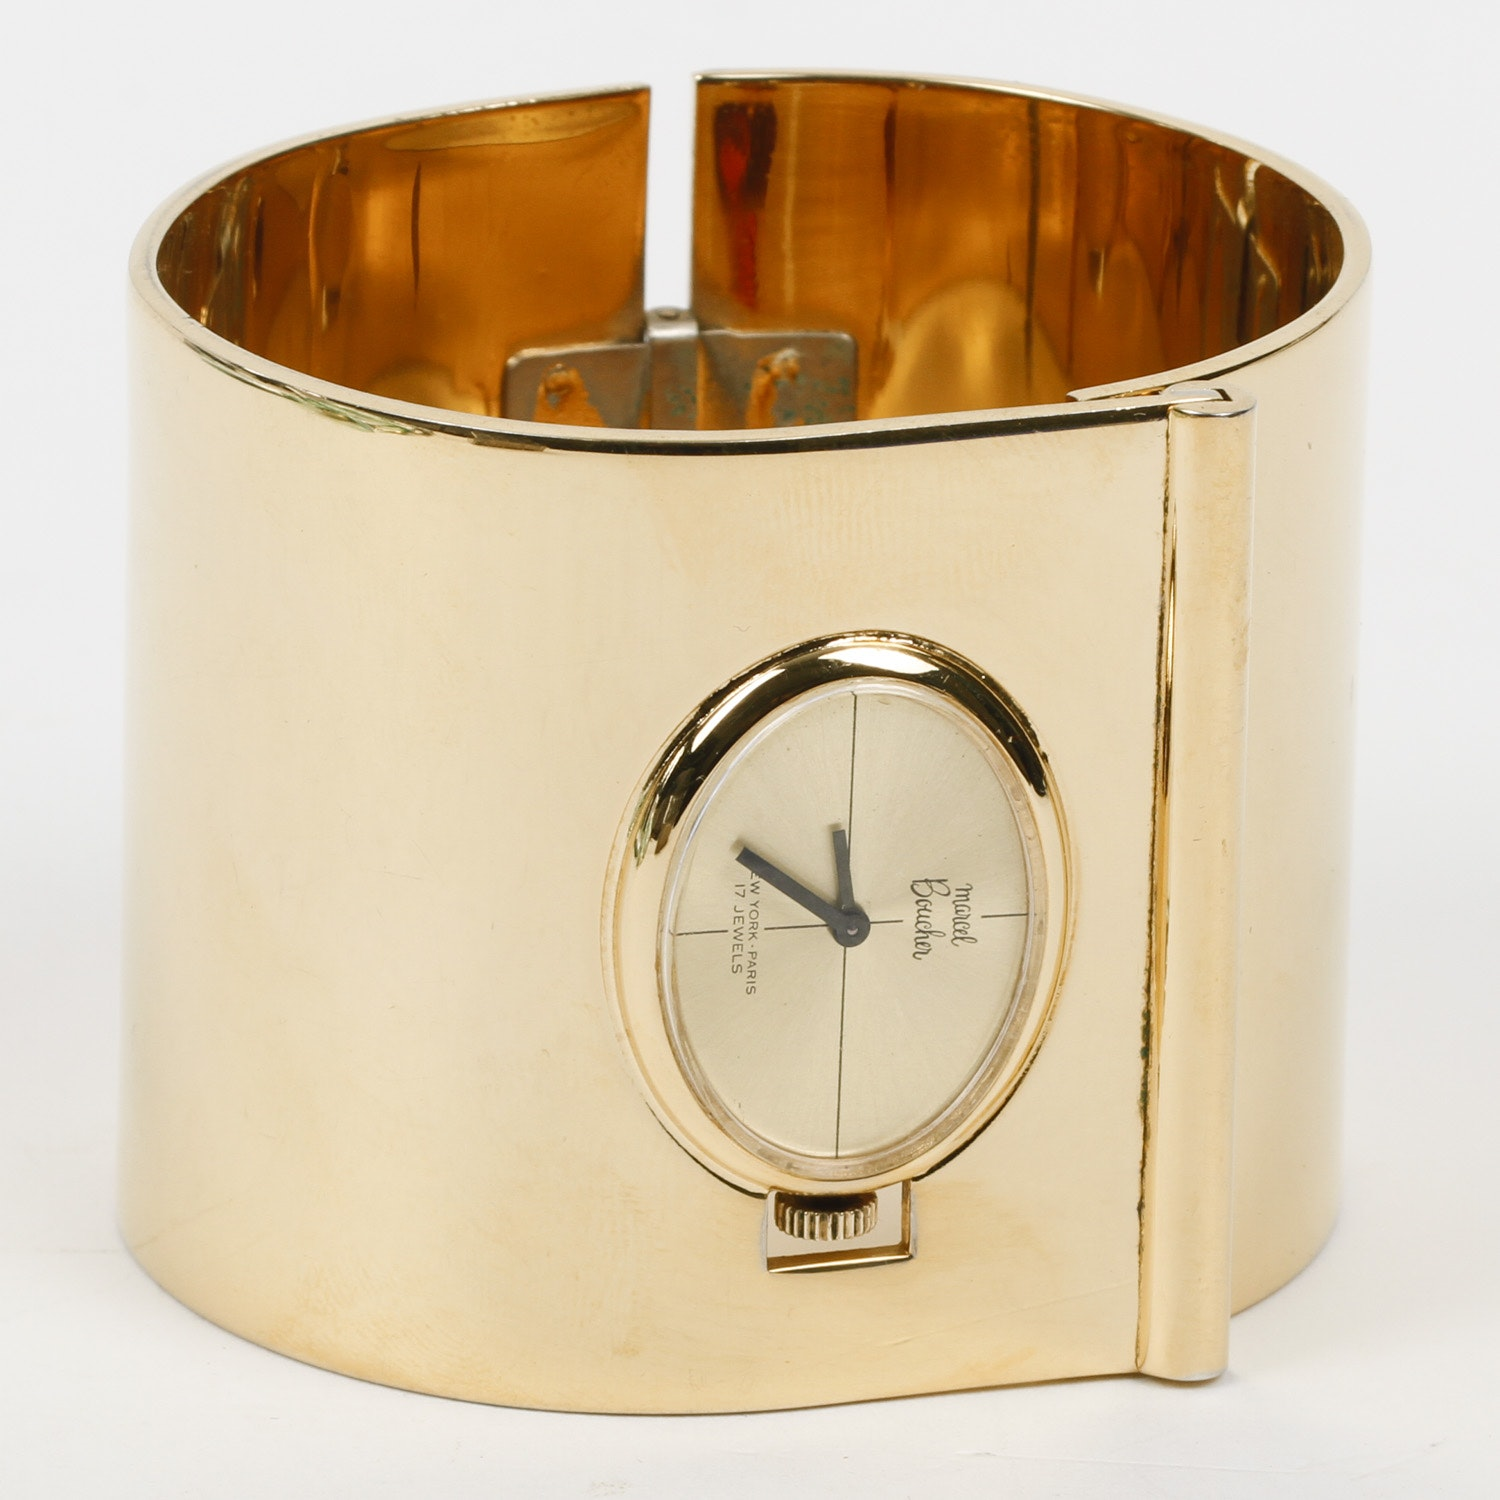 Vintage Marcel Boucher Cuff Watch